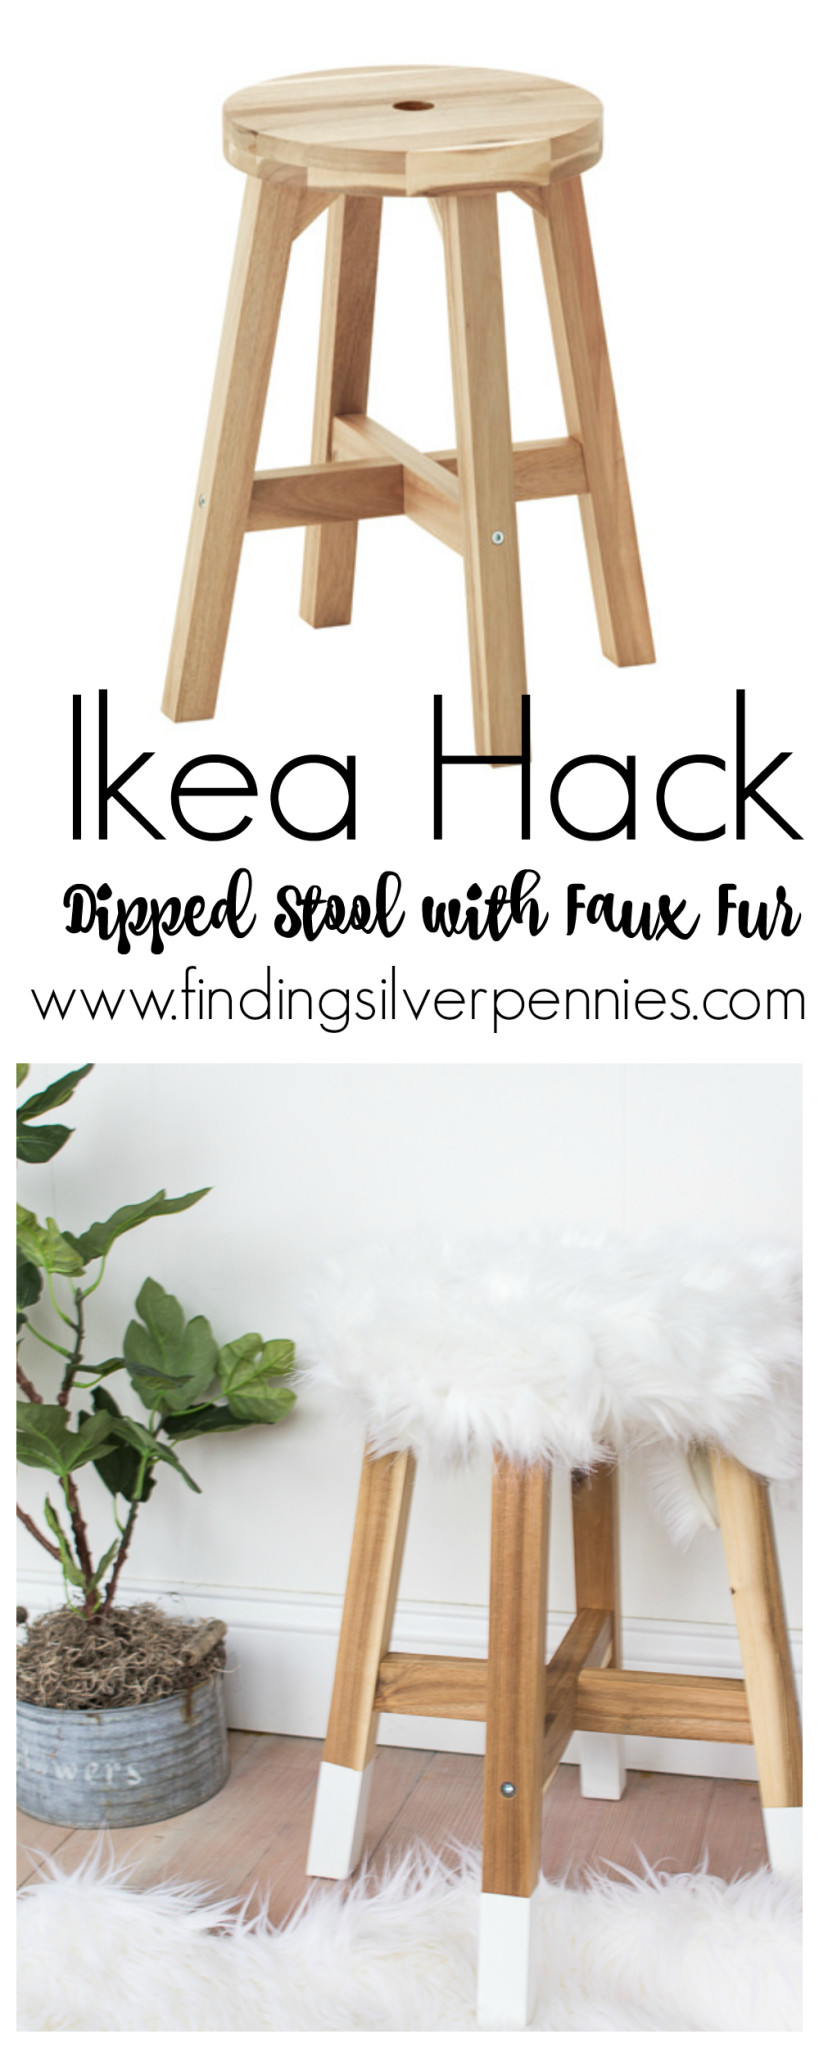 Ikea Hack Dipped Stool by Finding Silver Pennnies